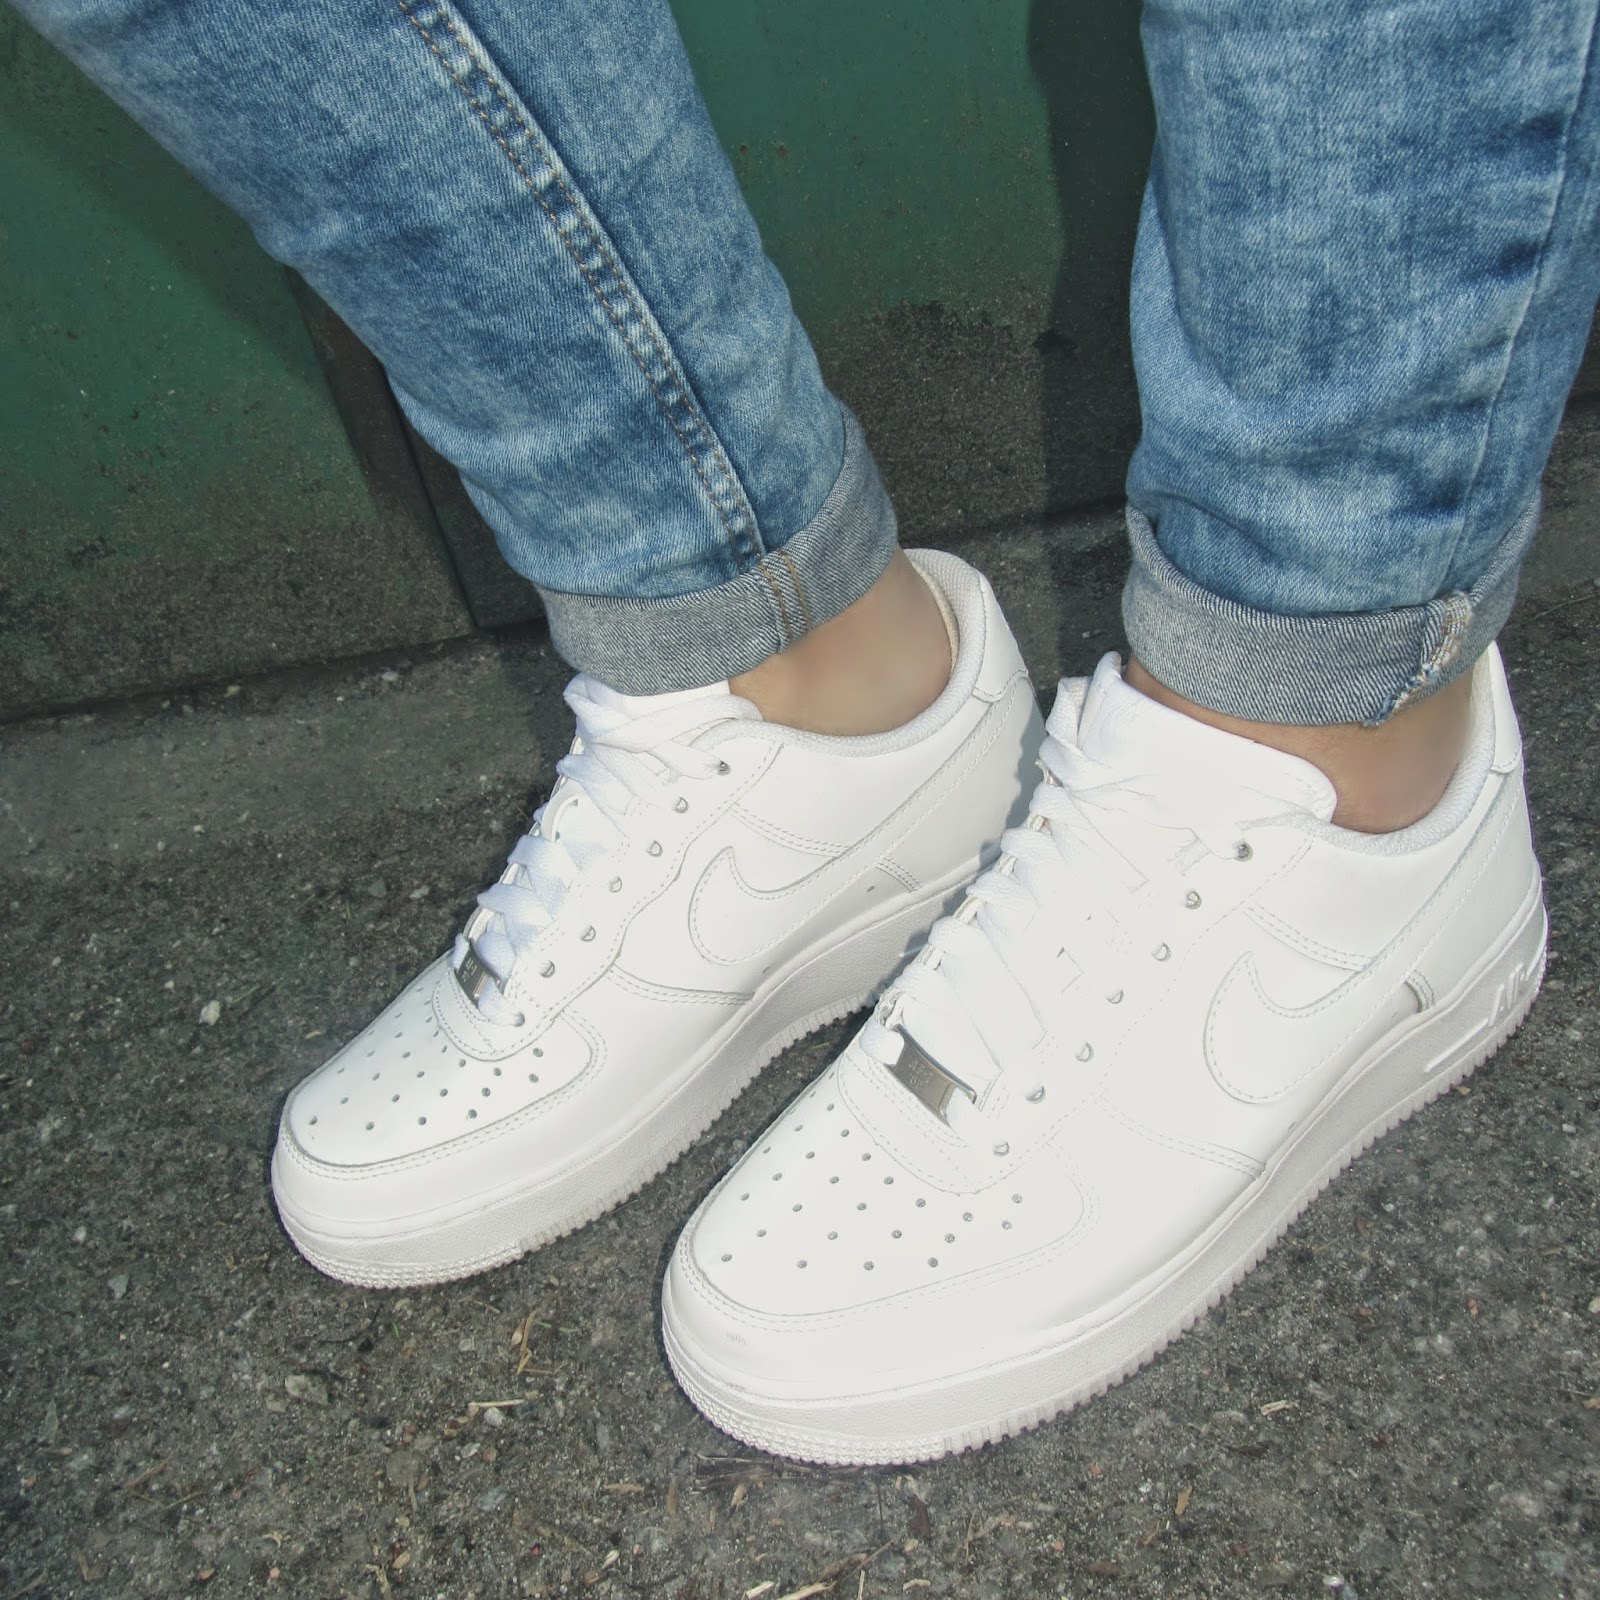 nike air force shoes tumblr walking